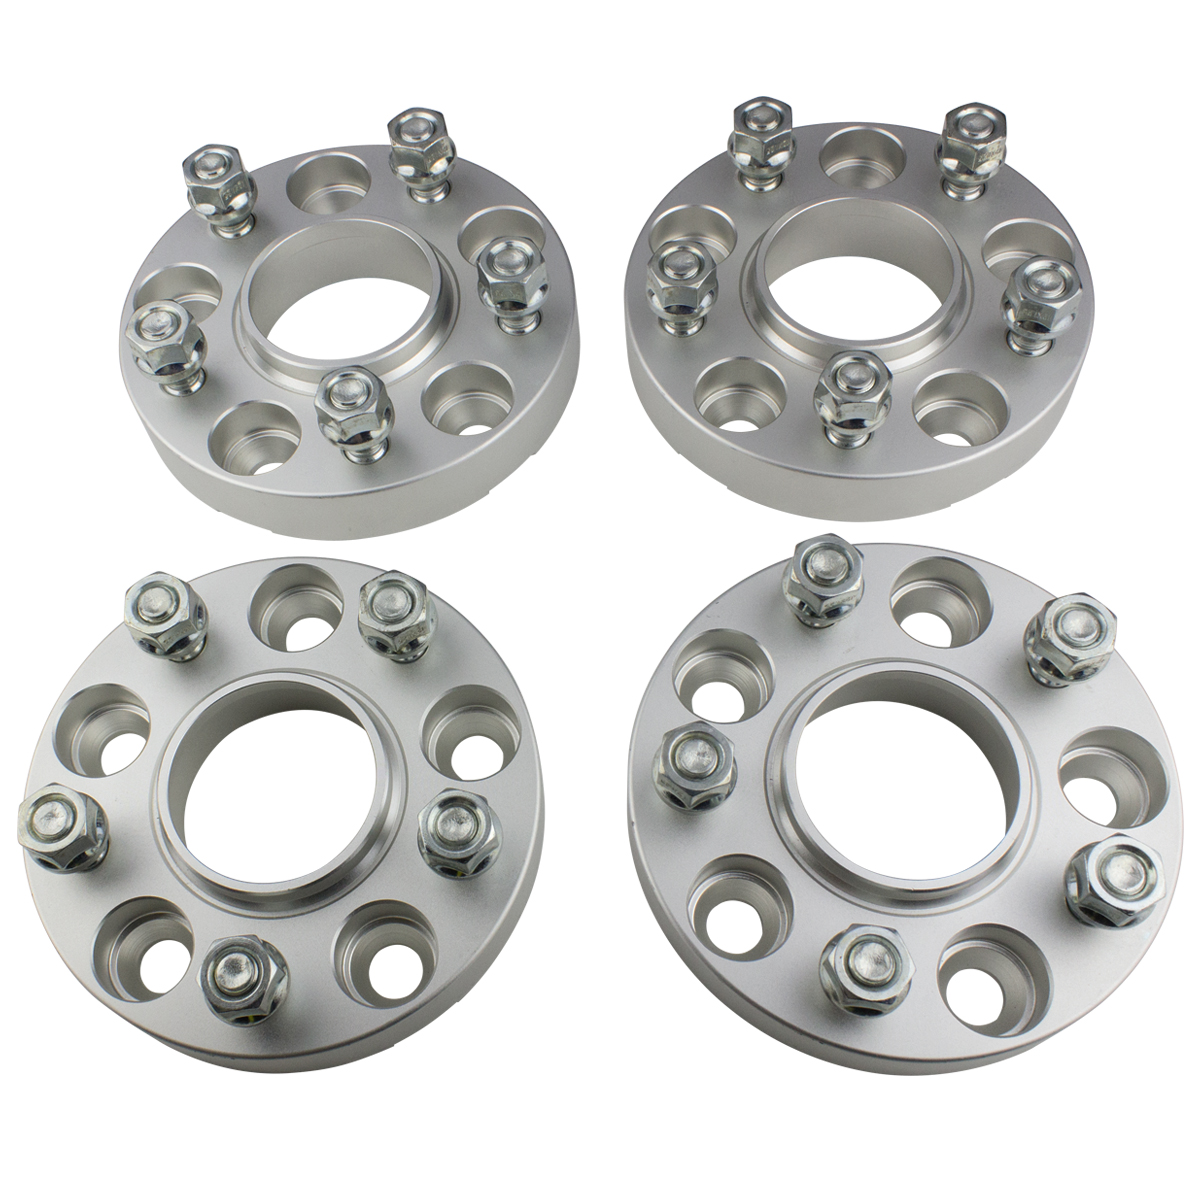 "4 X 1.5"" Billet Wheel Spacers Kit Fits 2002-2011 Dodge Ram"